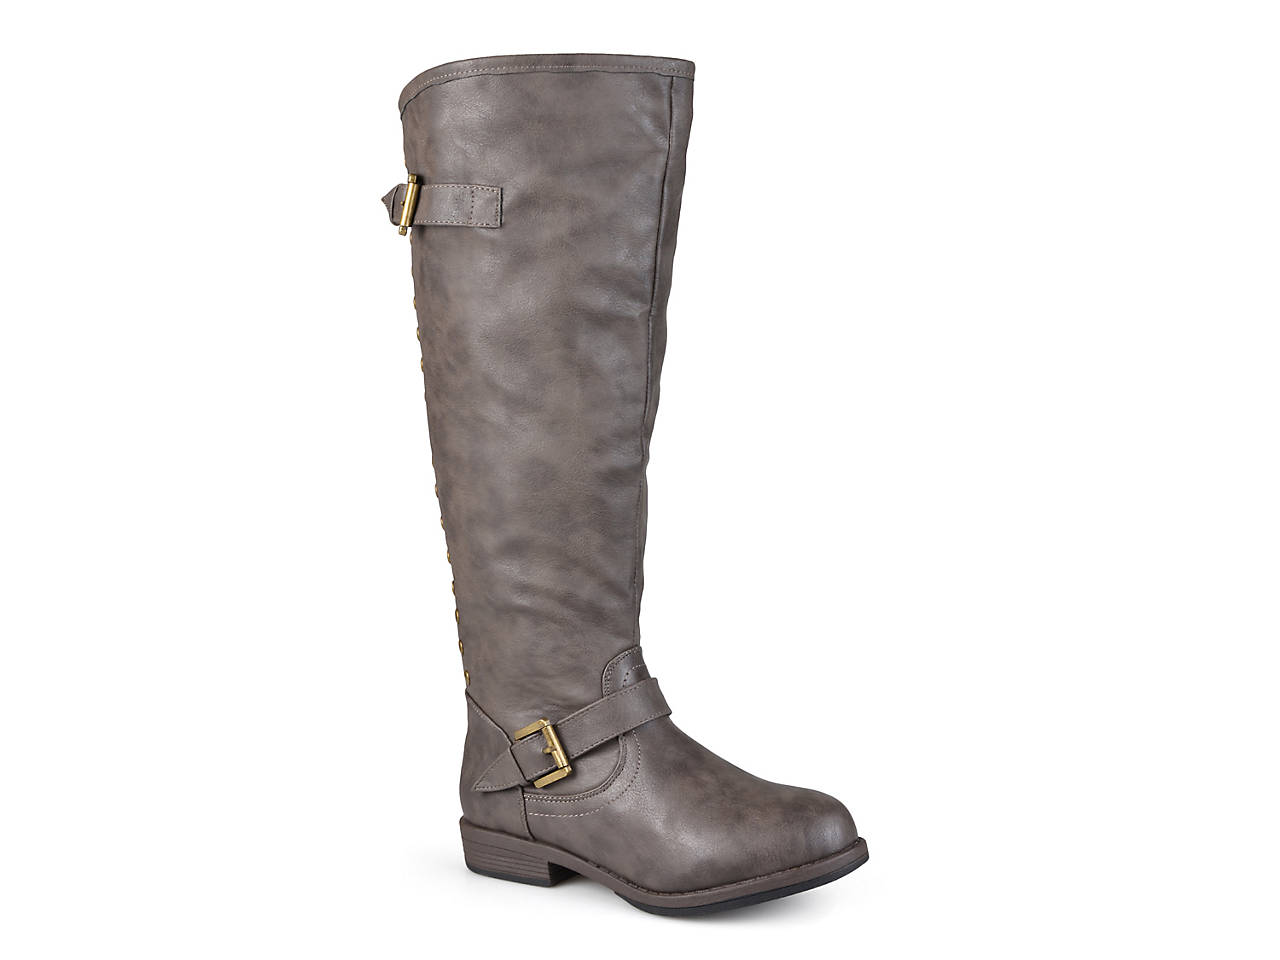 Women's Riding Boots | DSW